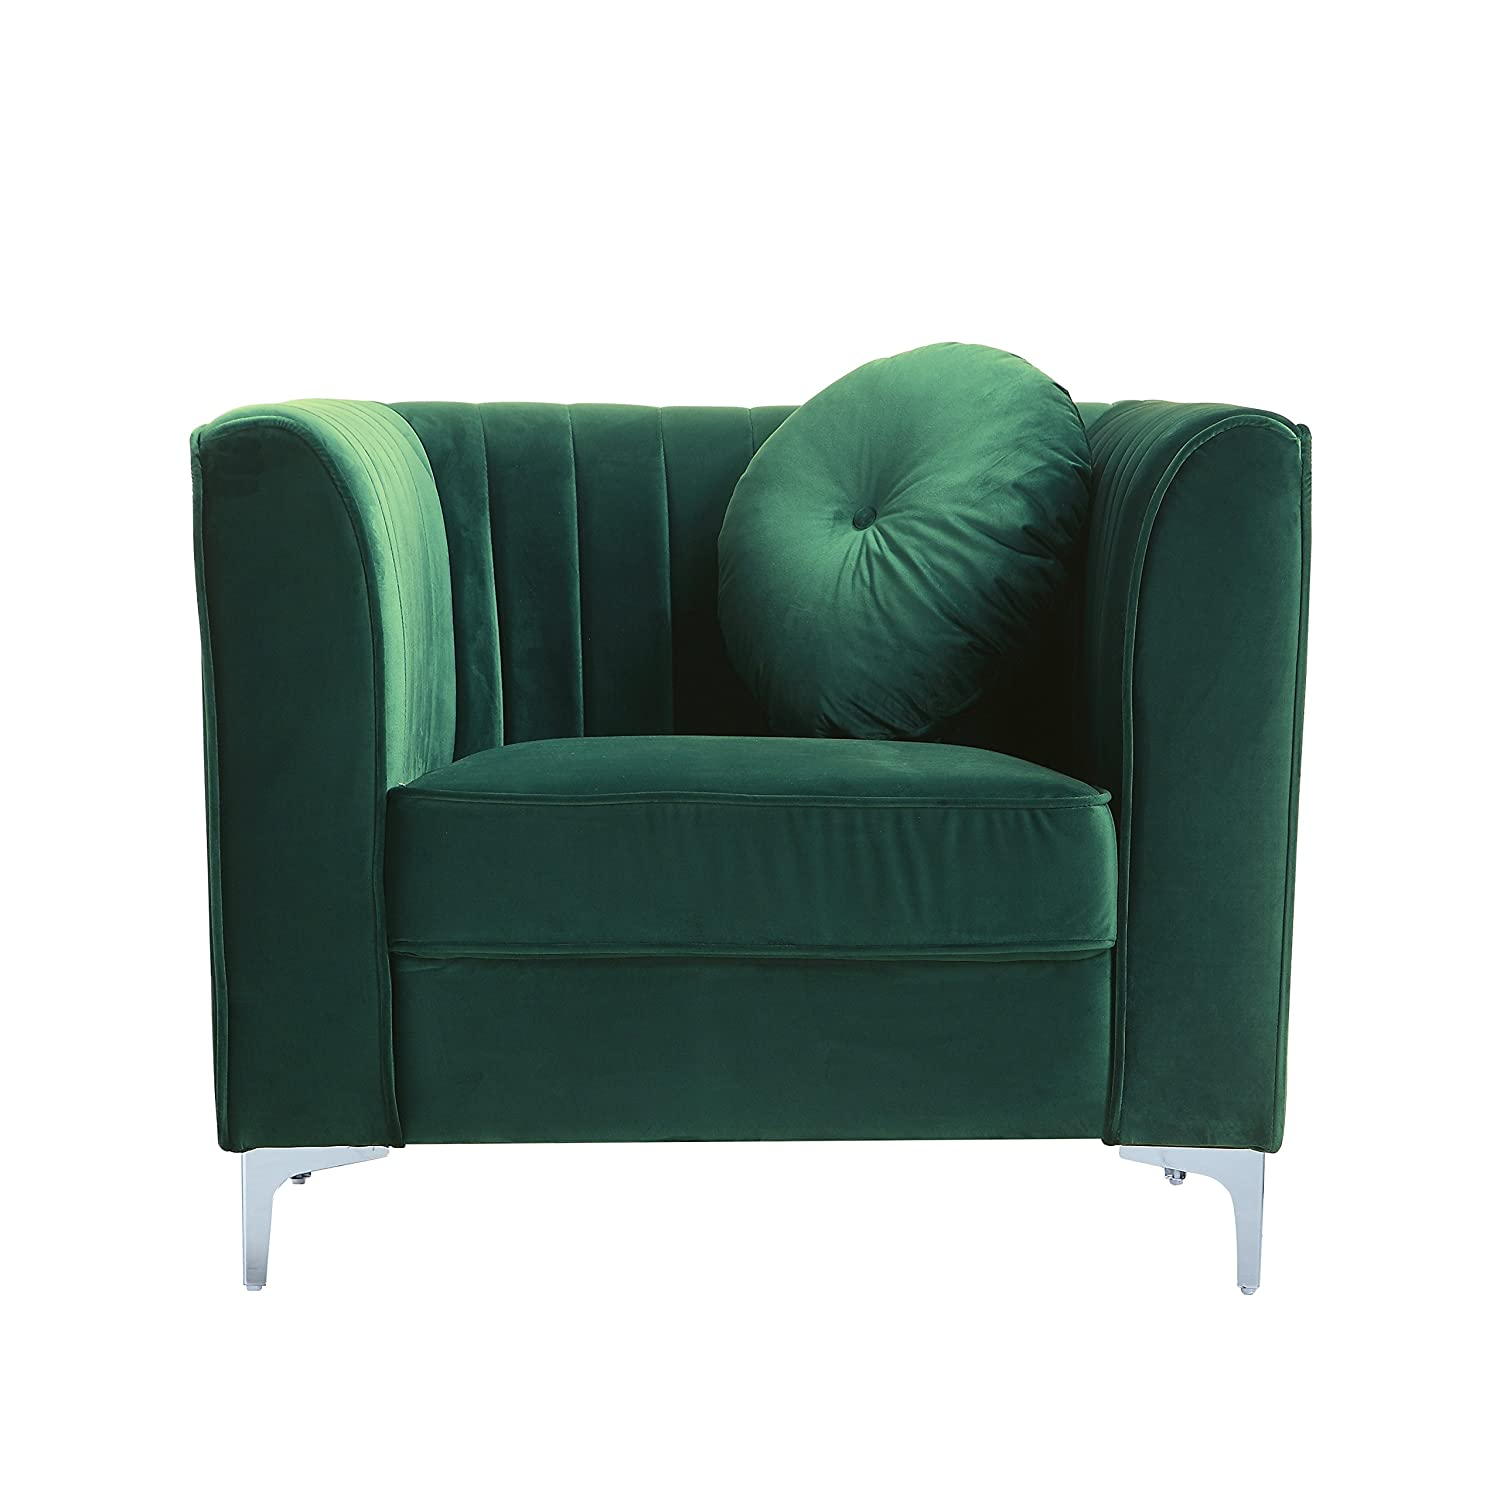 Classic And Traditional Living Room Marilyn Velvet Armchair, Club Chair With Tufted Accent Pillows (Green)